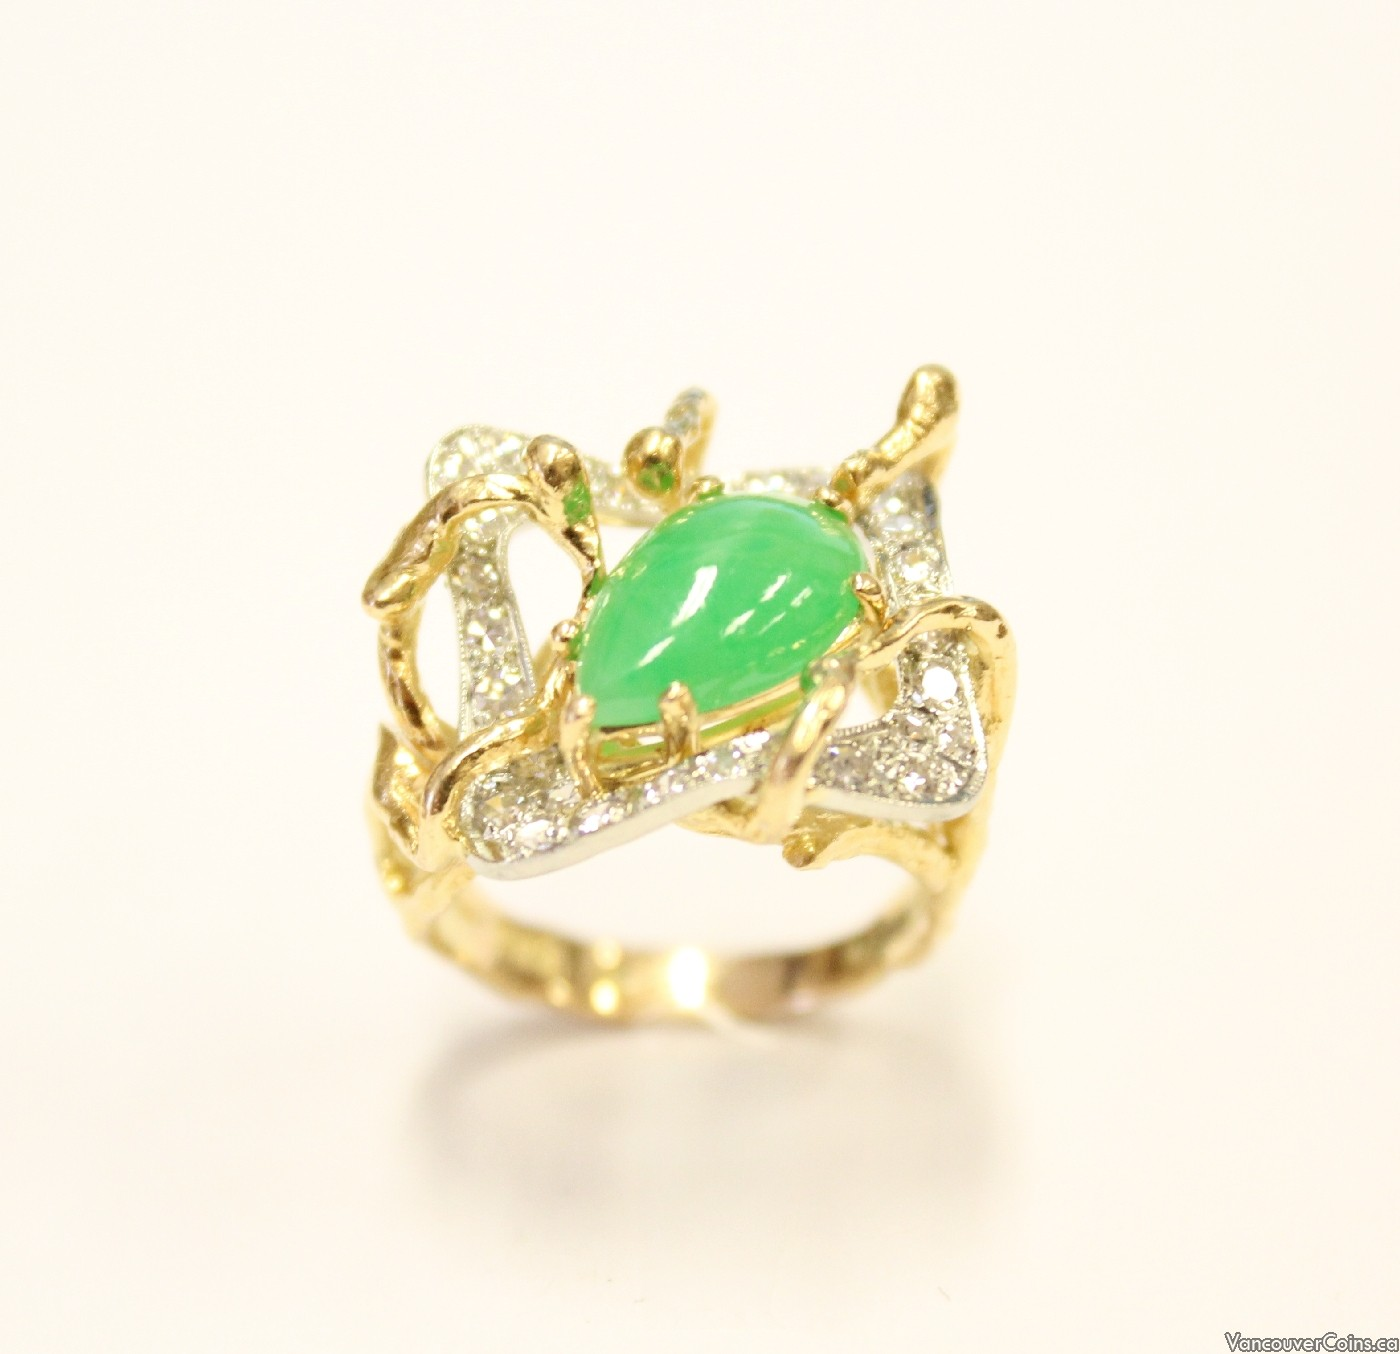 CAVELTI  18K yg ring Burmese Jade & 29 Diamonds VVS/VS G/I